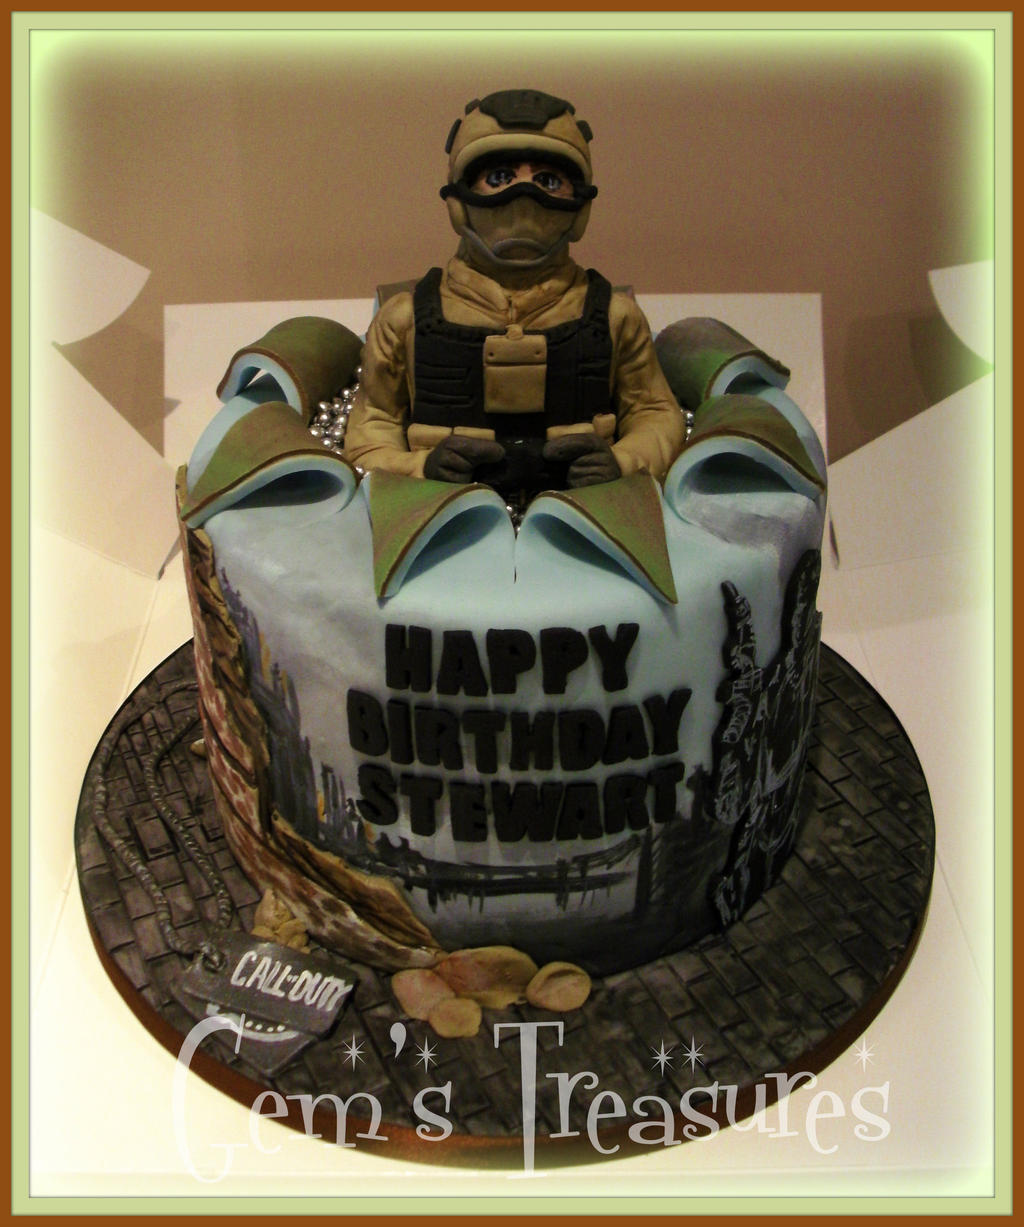 Call of duty cake by gertygetsgangster on deviantart for Black ops 3 decorations